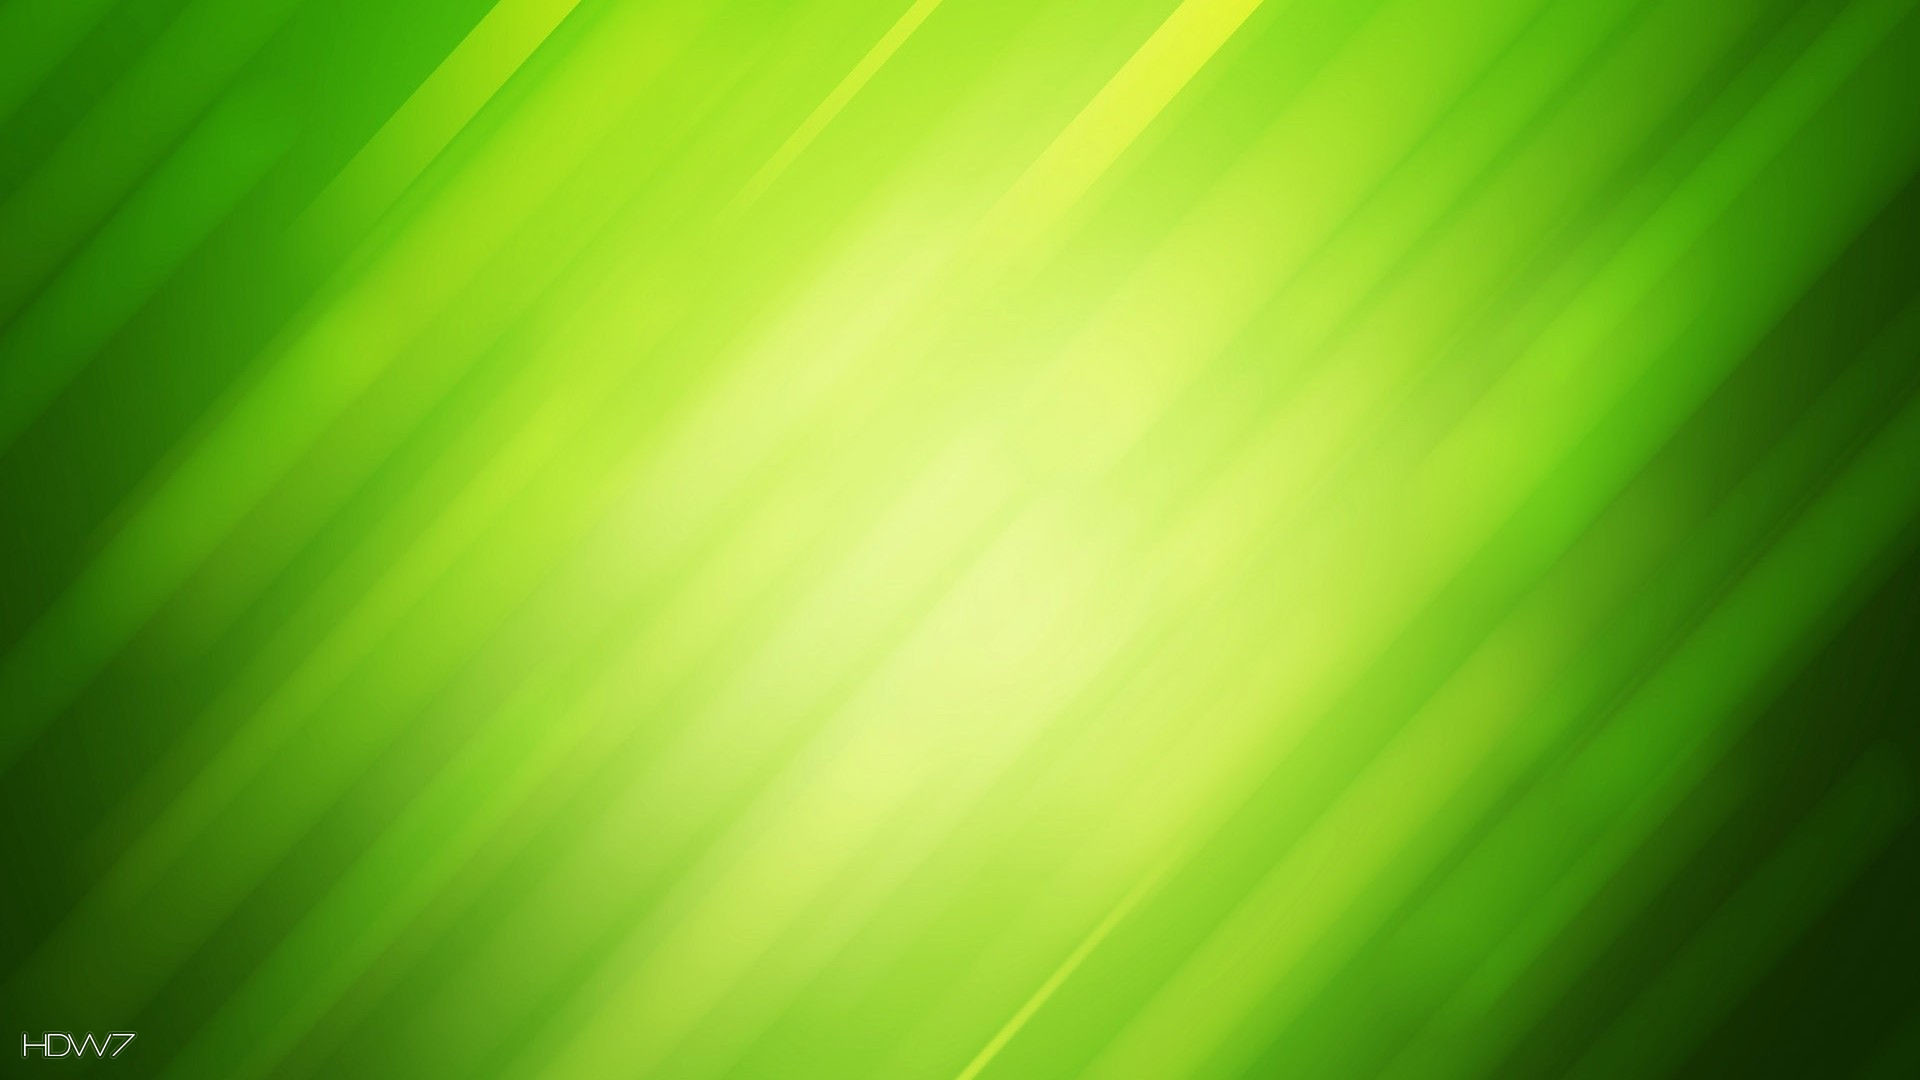 1920x1080 green abstract hd wallpaper 1080p